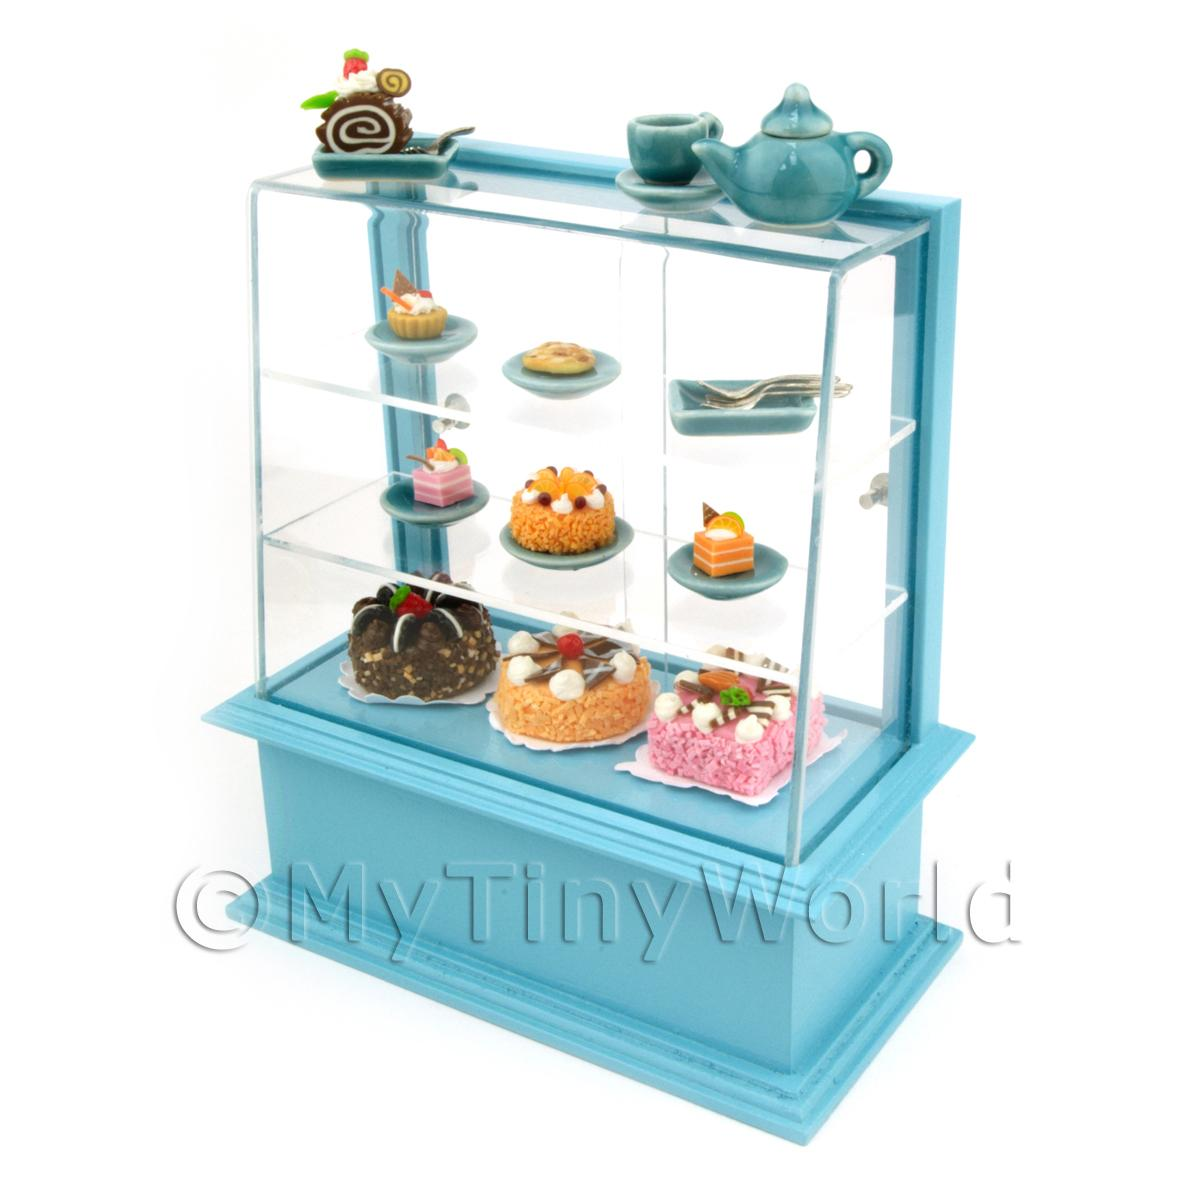 Dolls House Miniature Blue Themed Cafe Display